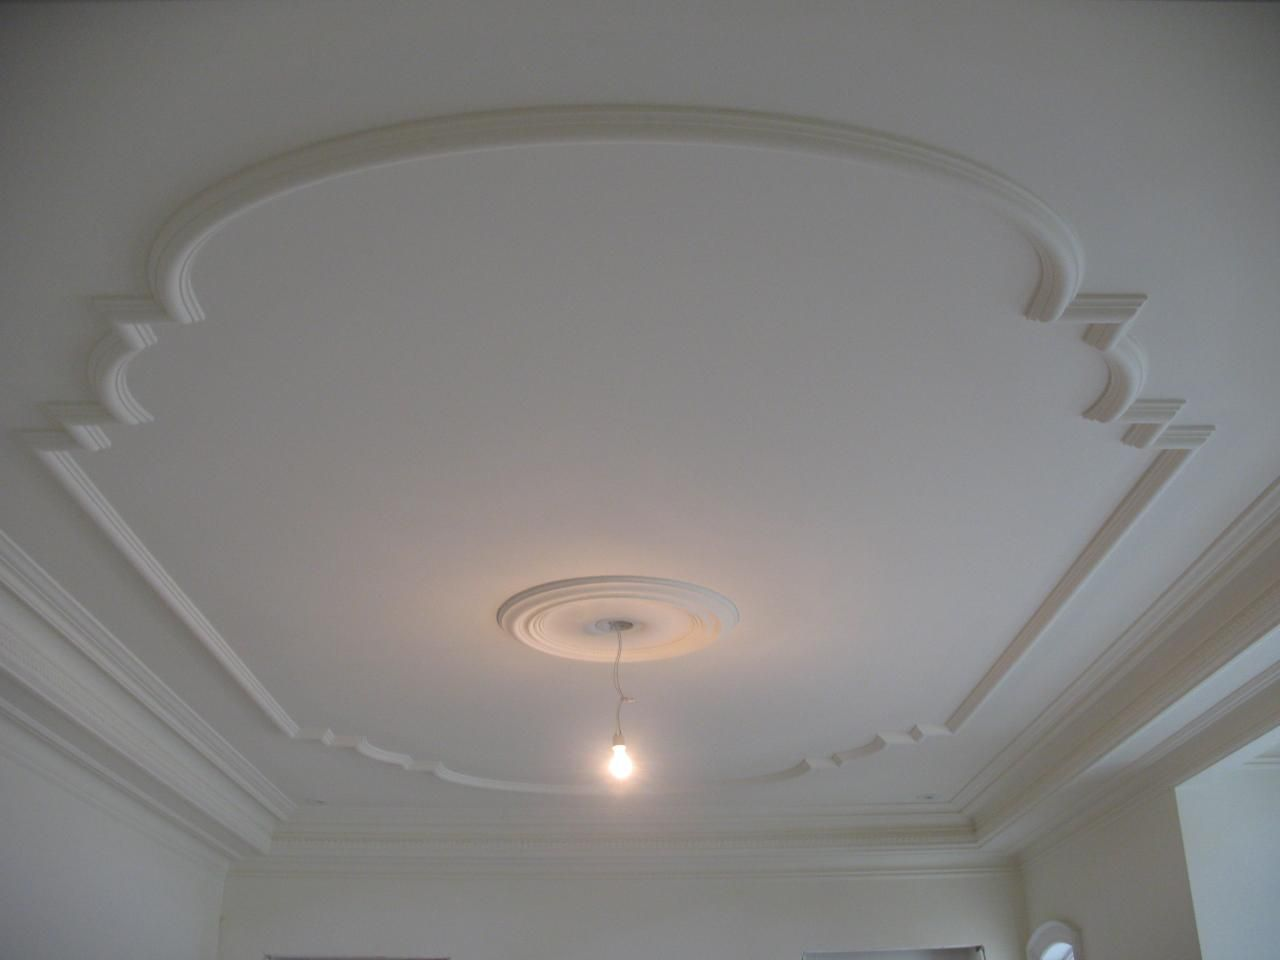 Gallery Empire Plaster Moulding In 2020 Plaster Ceiling Design Pop Ceiling Design Molding Ceiling